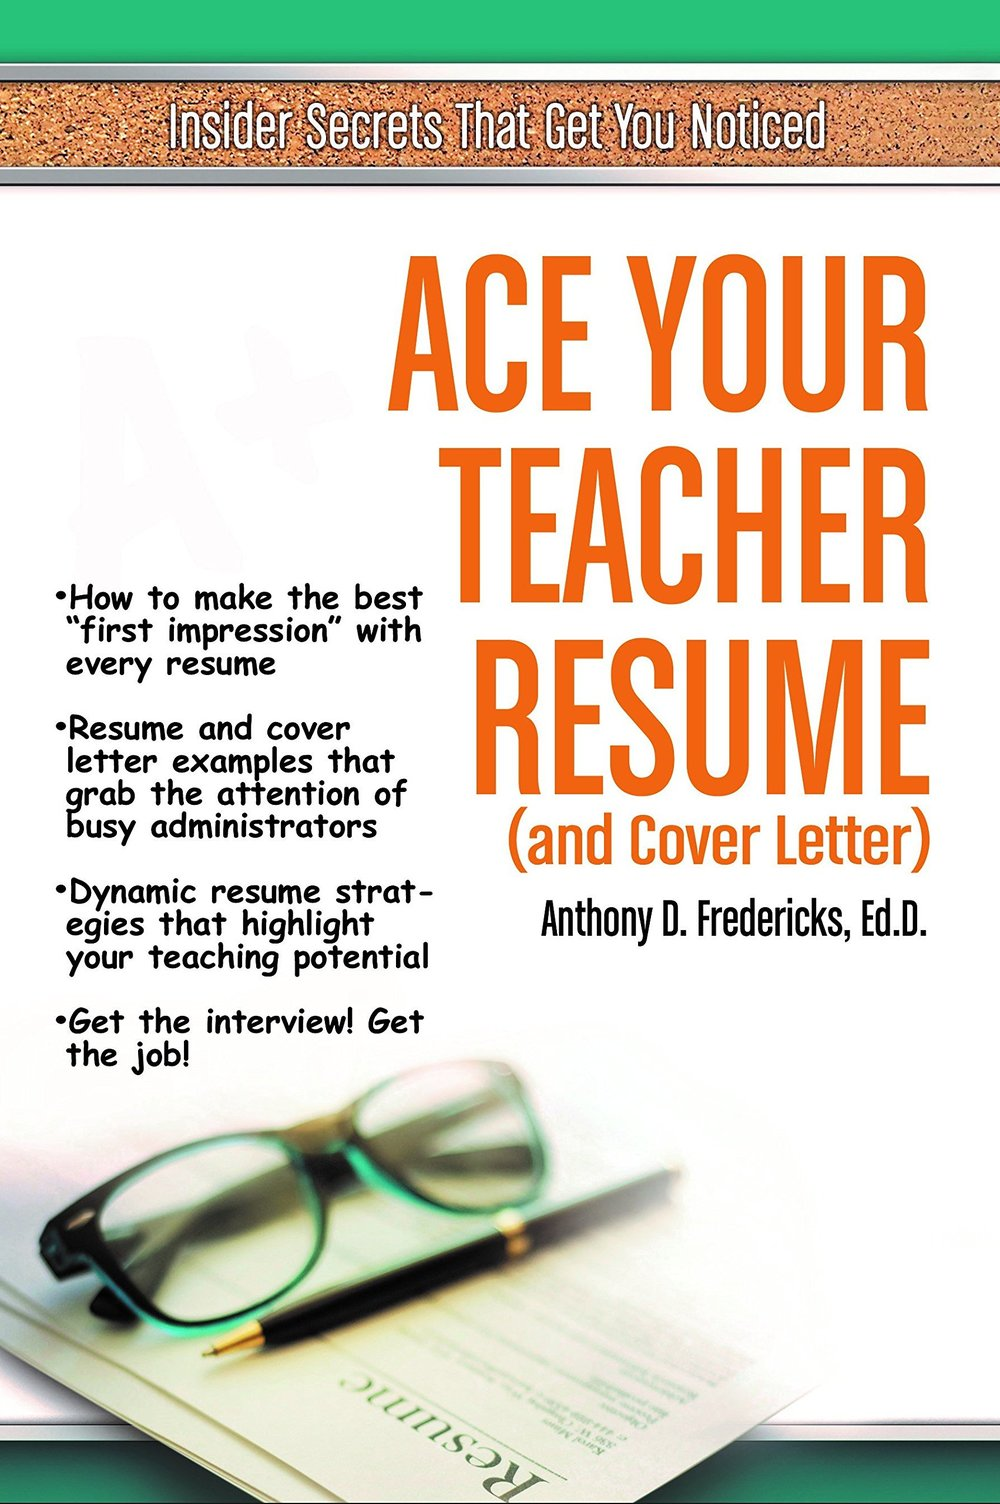 Ace Your Teacher Resume.jpg